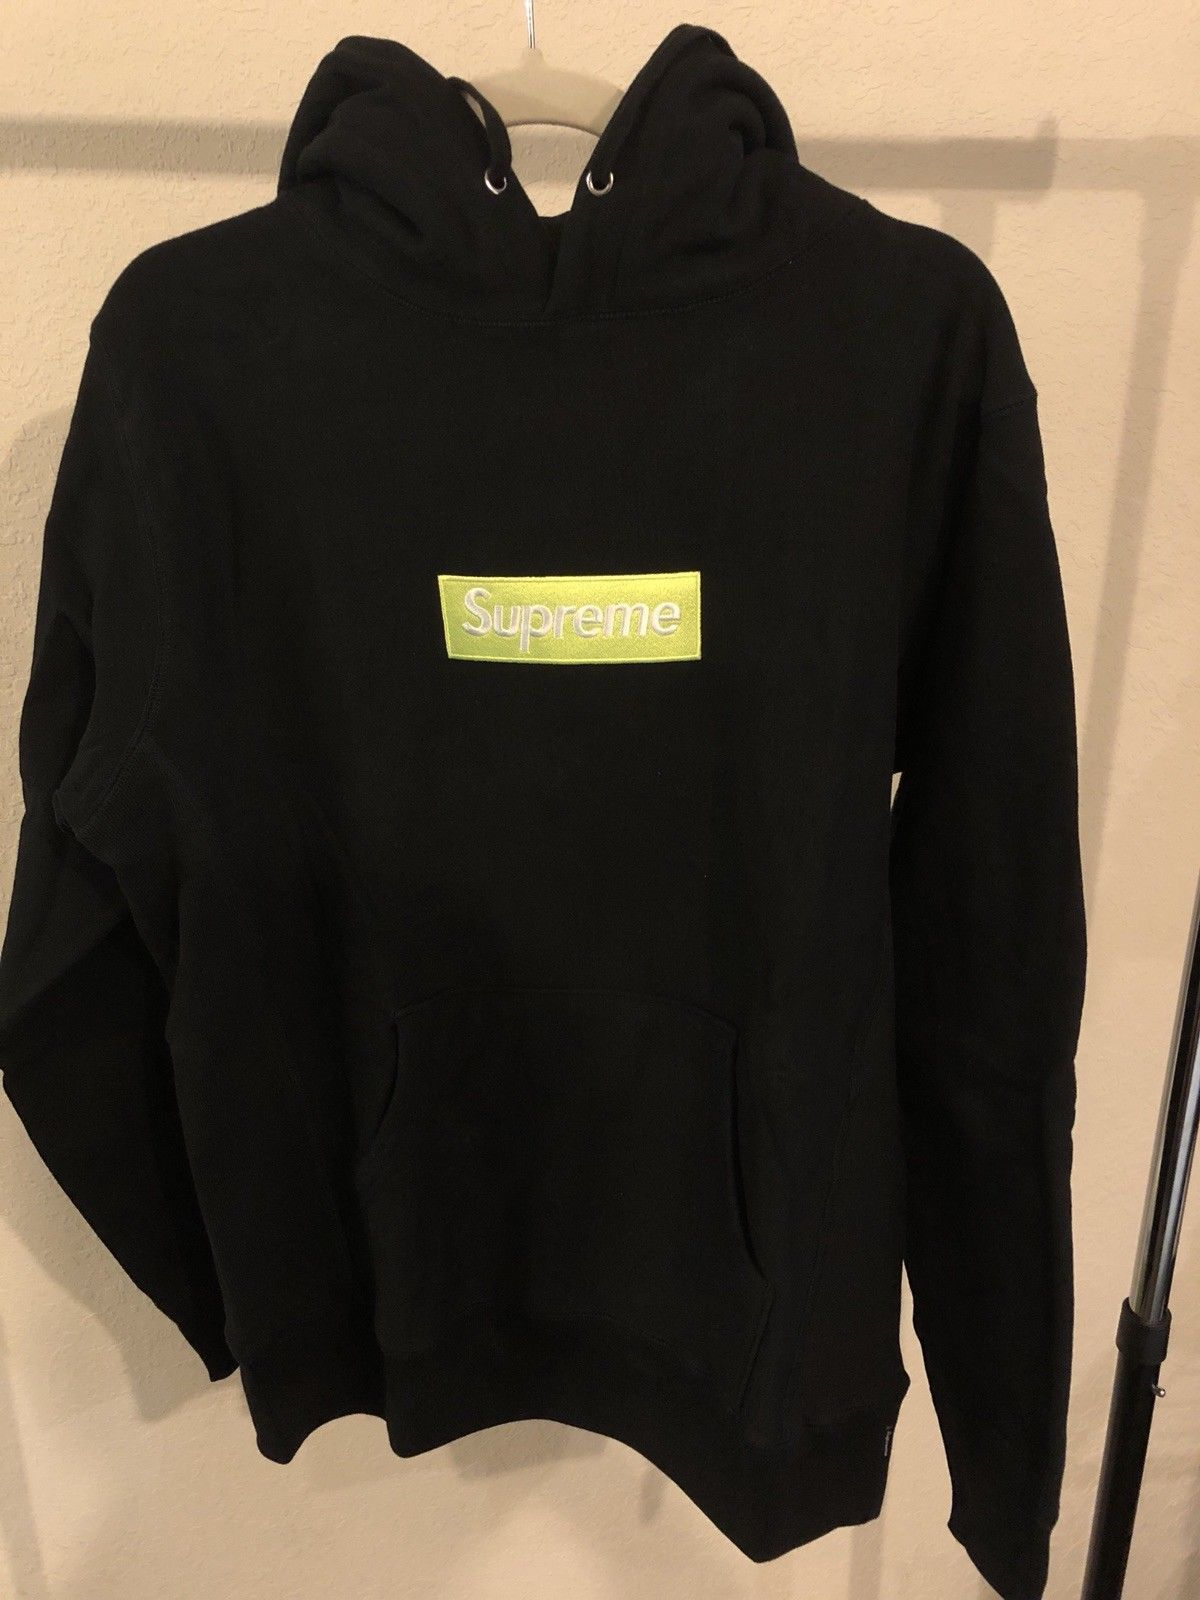 80f86163fde2 supreme box logo hoodie fw17 Black green Bogo size Medium  Supreme  logo   box  clothing  apparel  Gift  Trending  Trend  hot  Shop  Shopping   Holiday ...